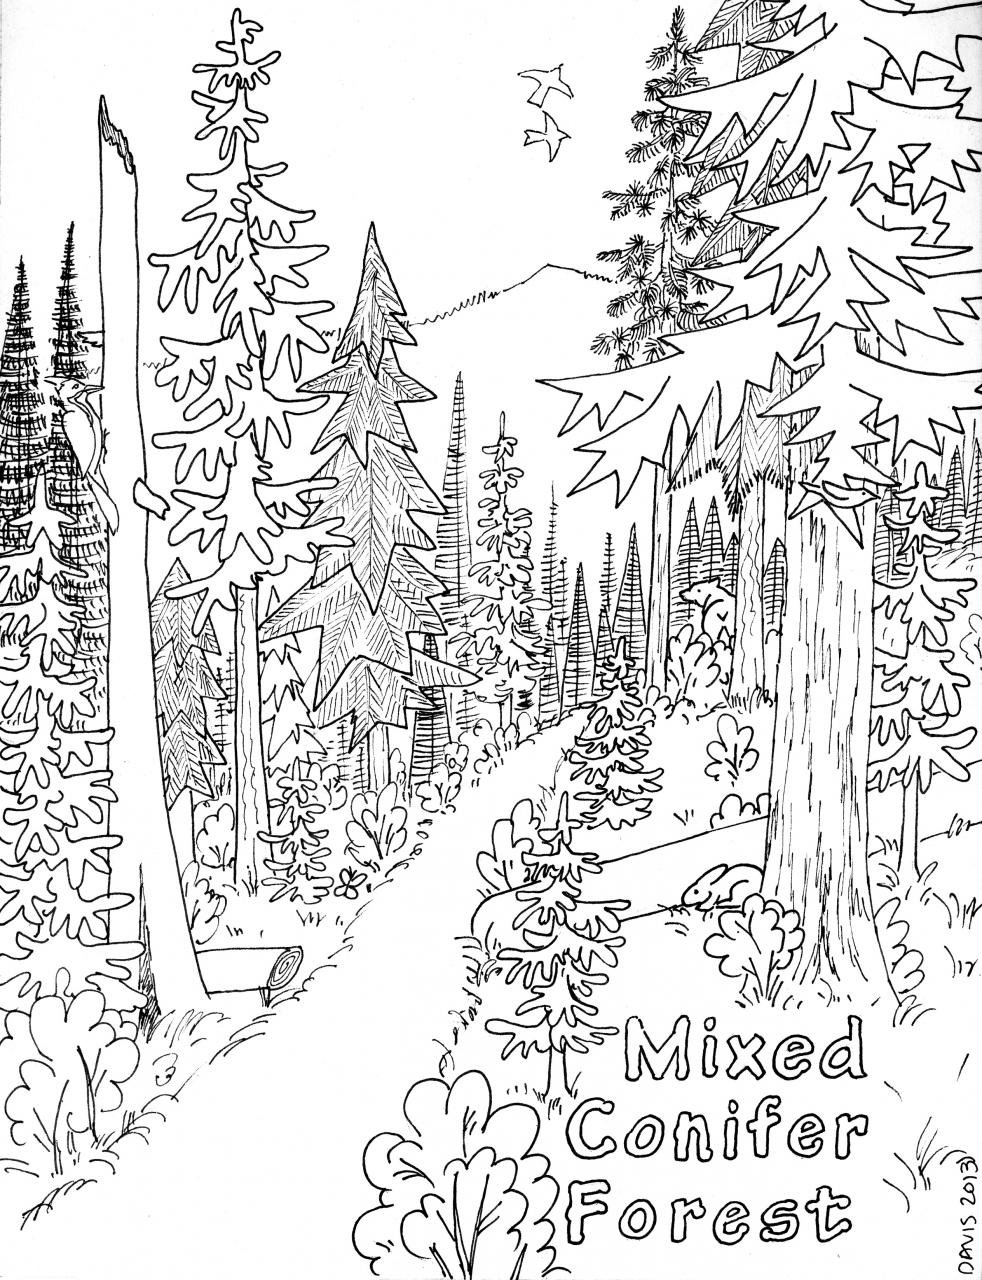 forest coloring page forest coloring pages to download and print for free page forest coloring 1 1